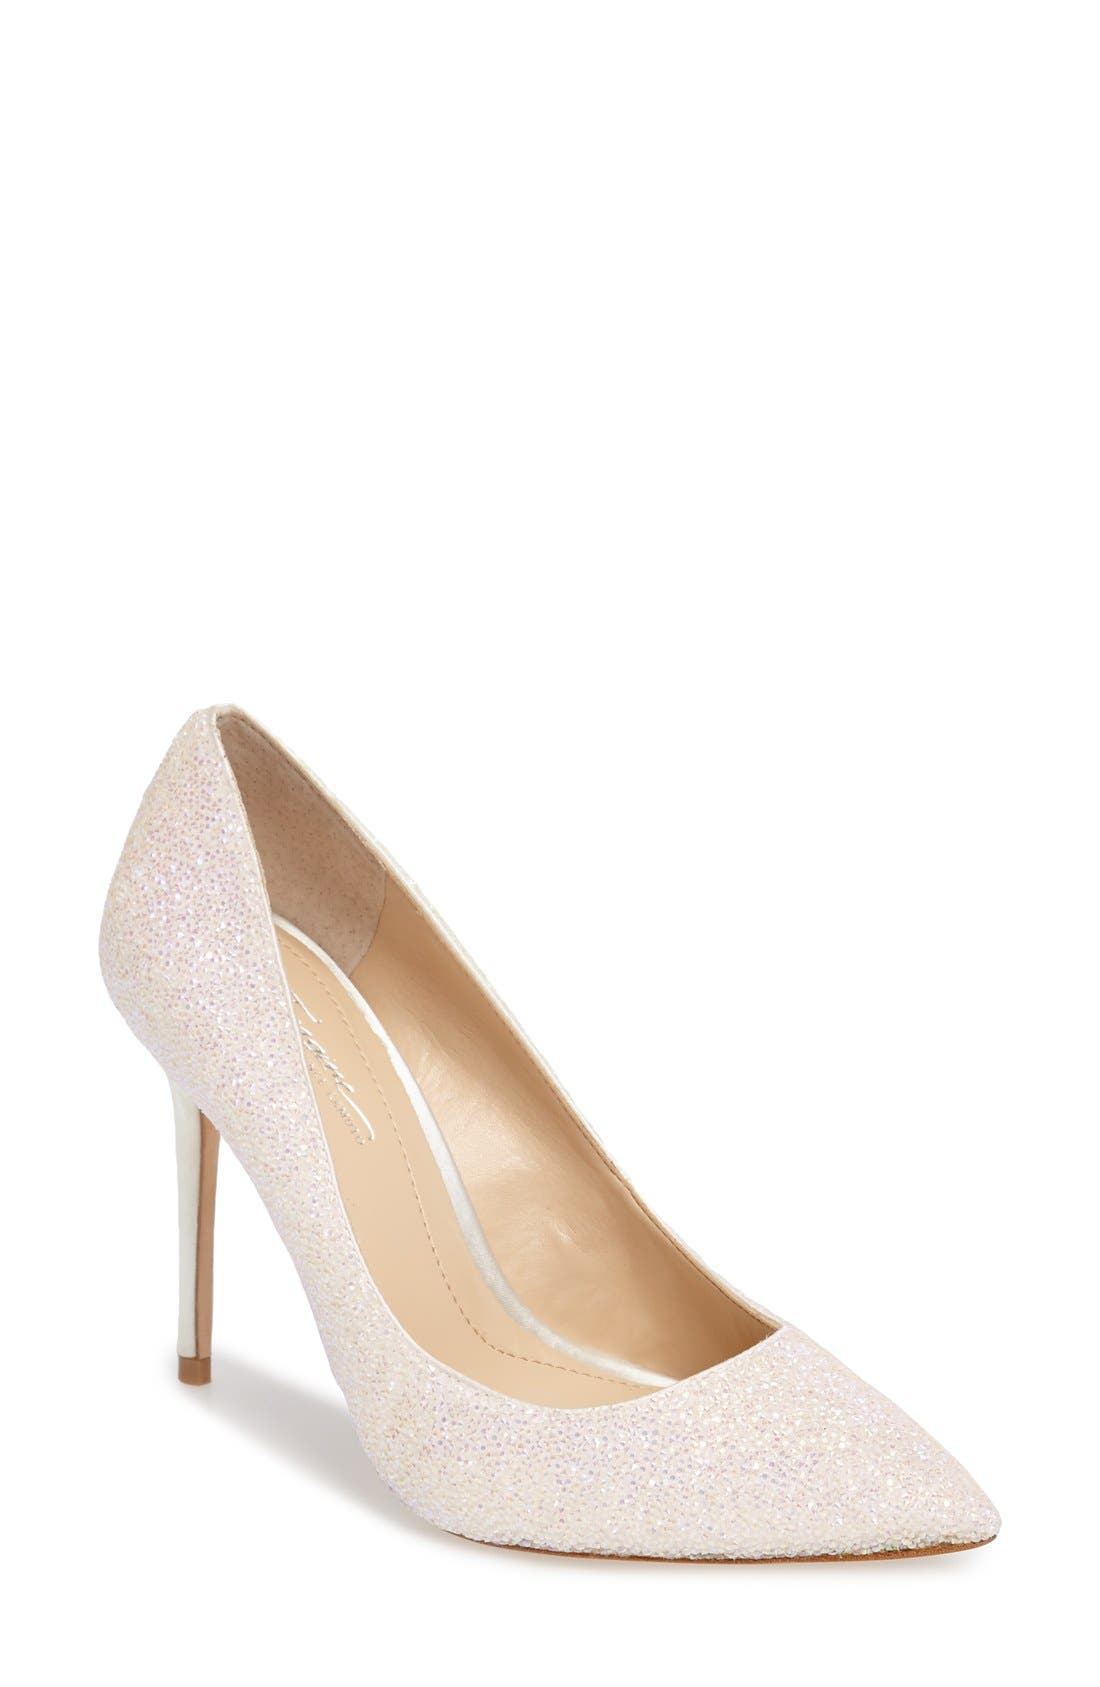 Main Image - Imagine by Vince Camuto 'Olson' Crystal Embellished Pump (Women)